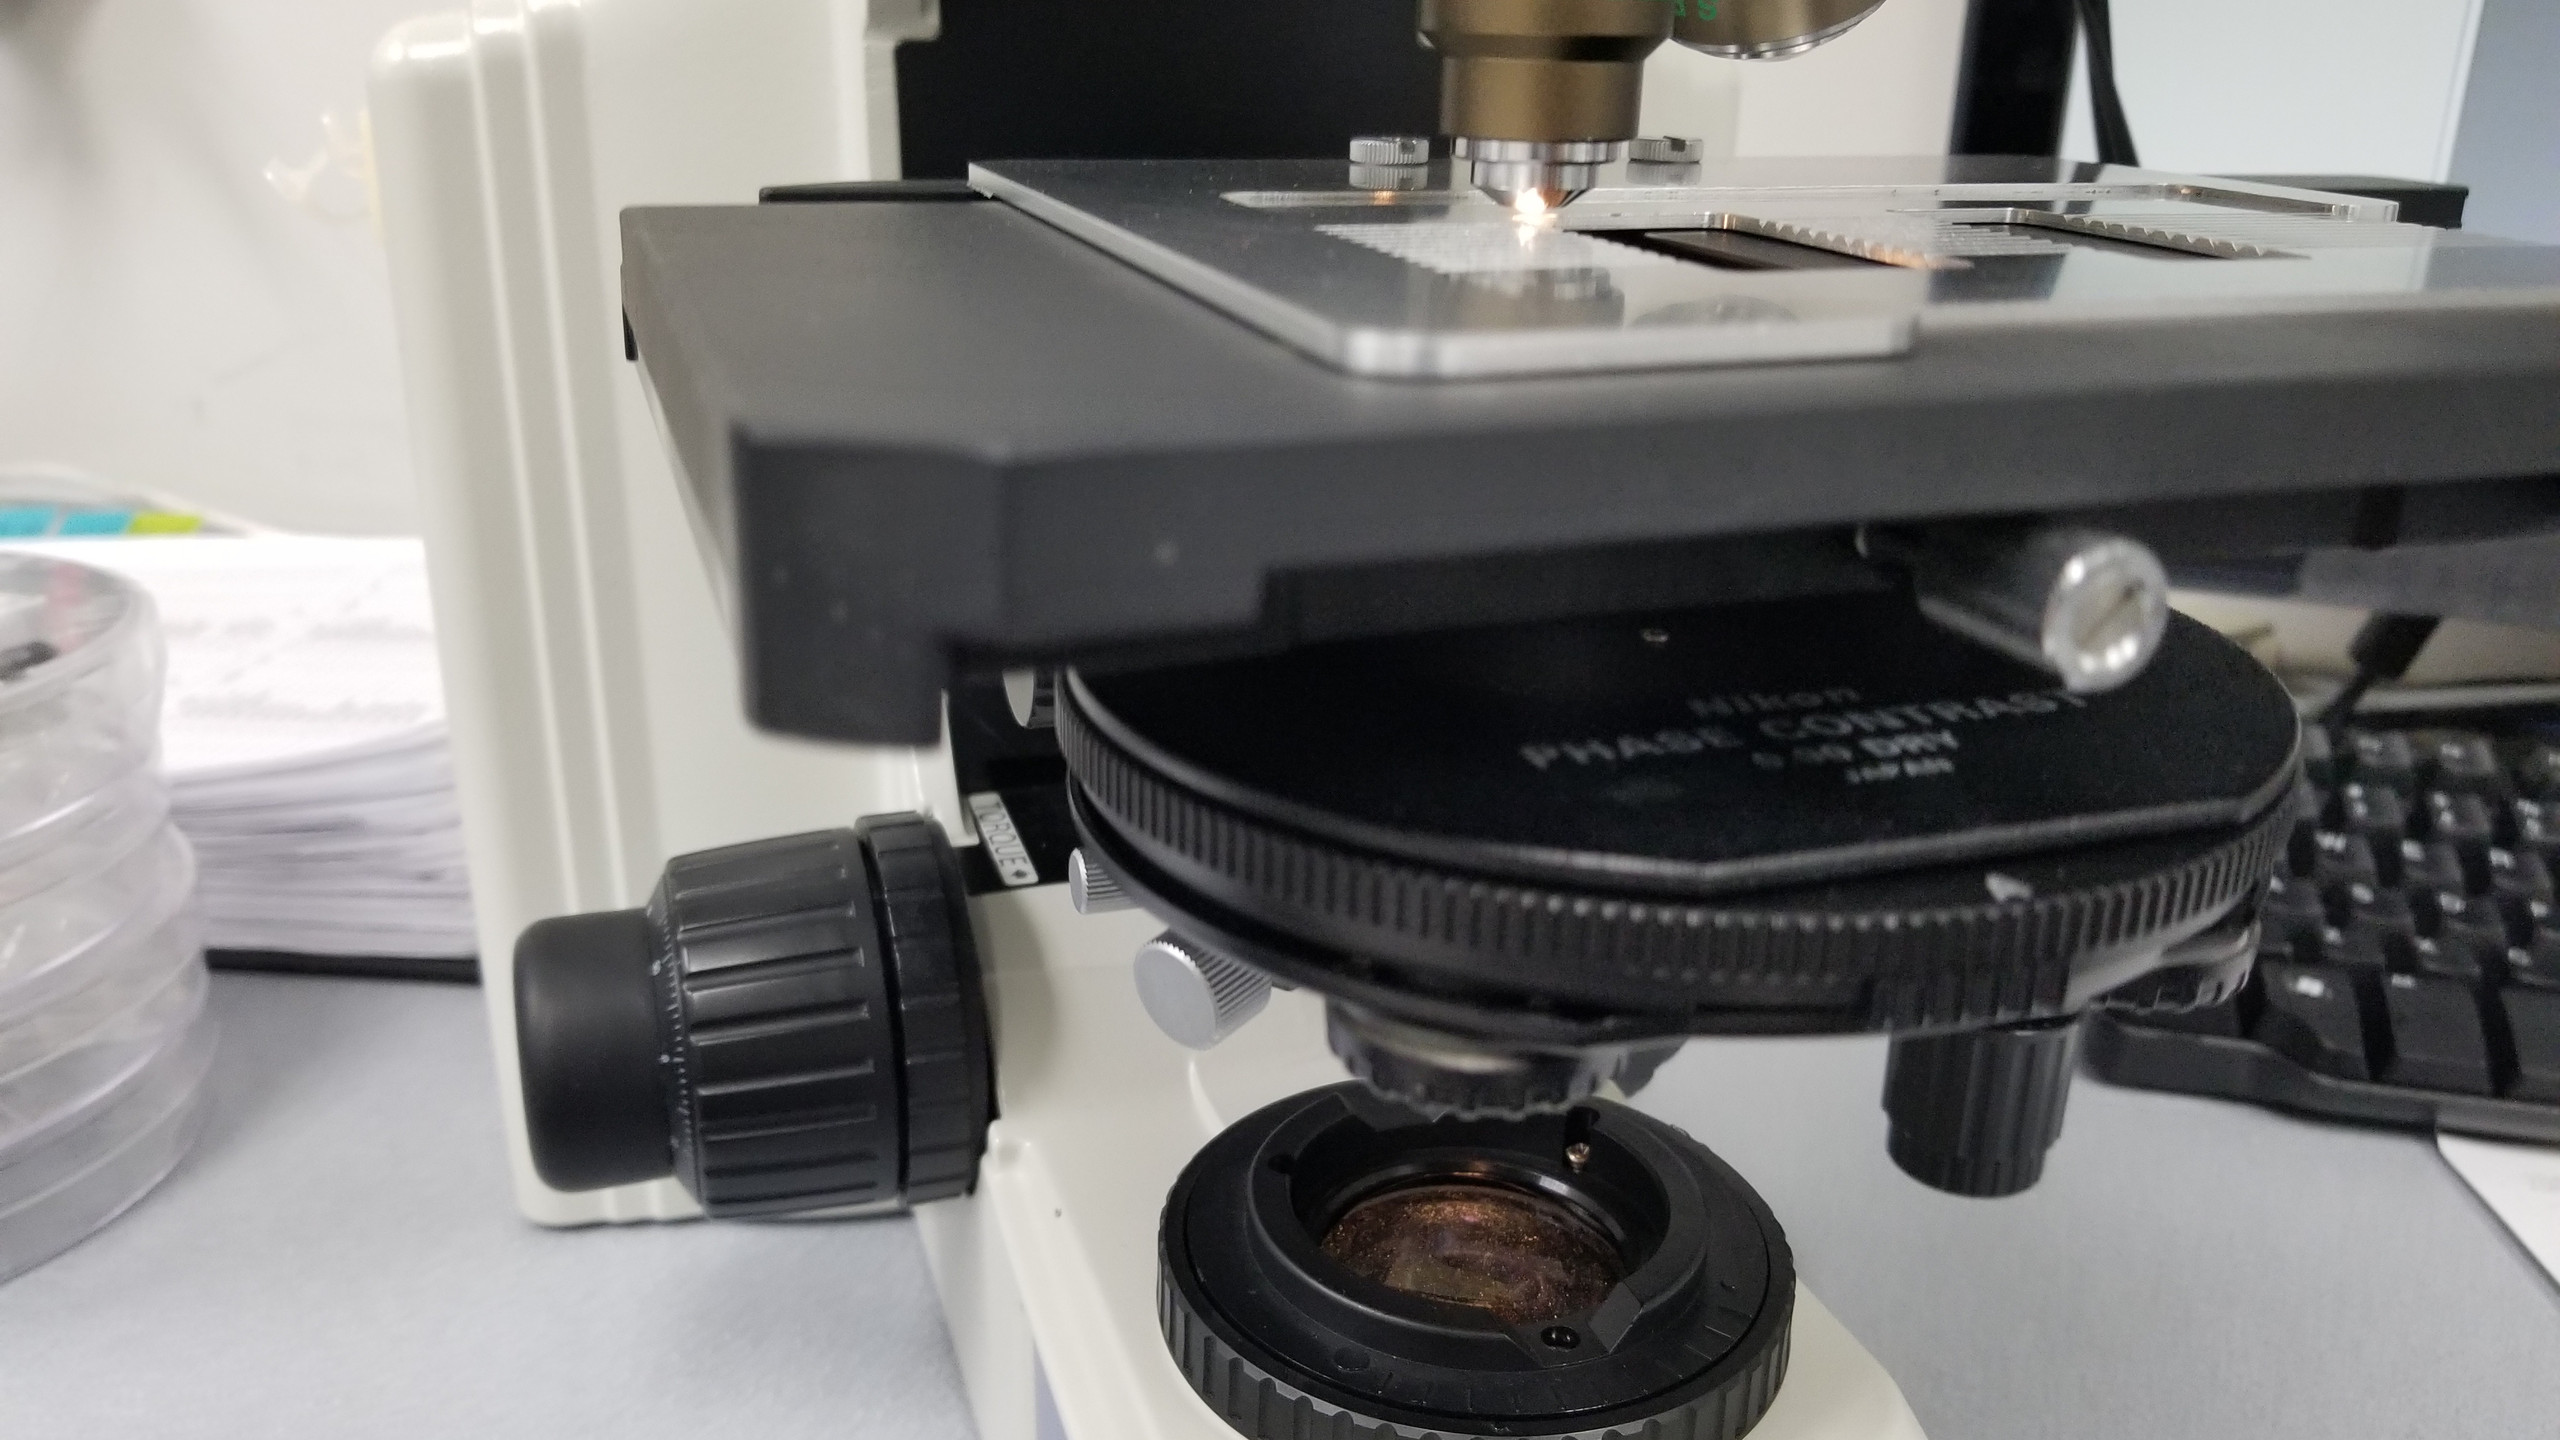 Cyth Develops a Quality Control Microscope to Further Medical Advancements